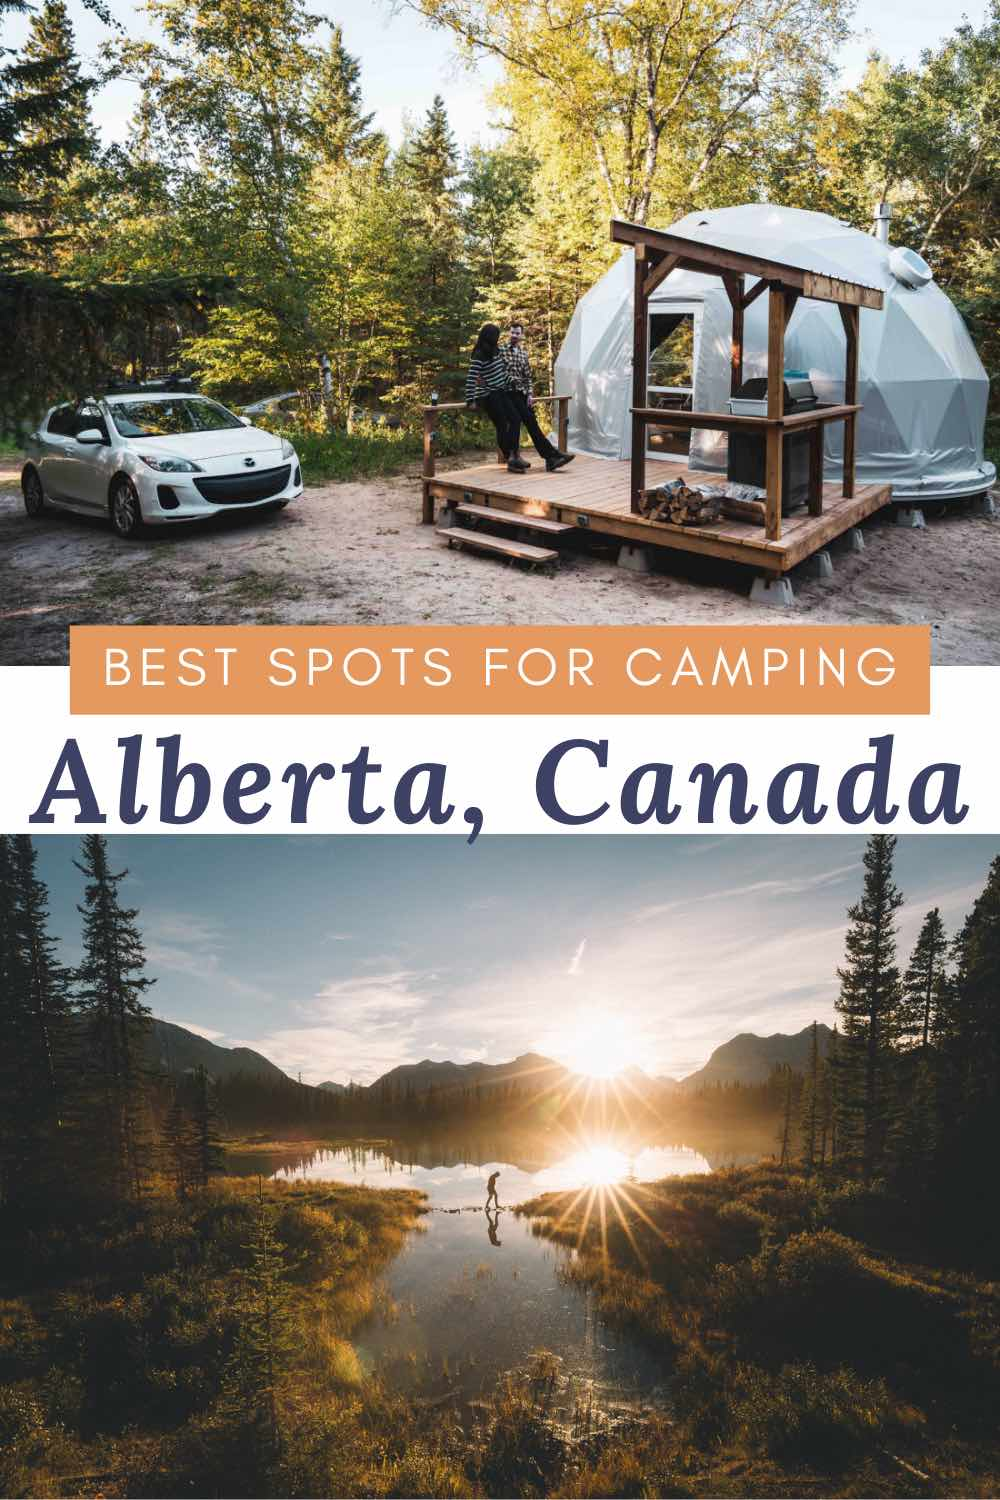 Where to camp in Alberta